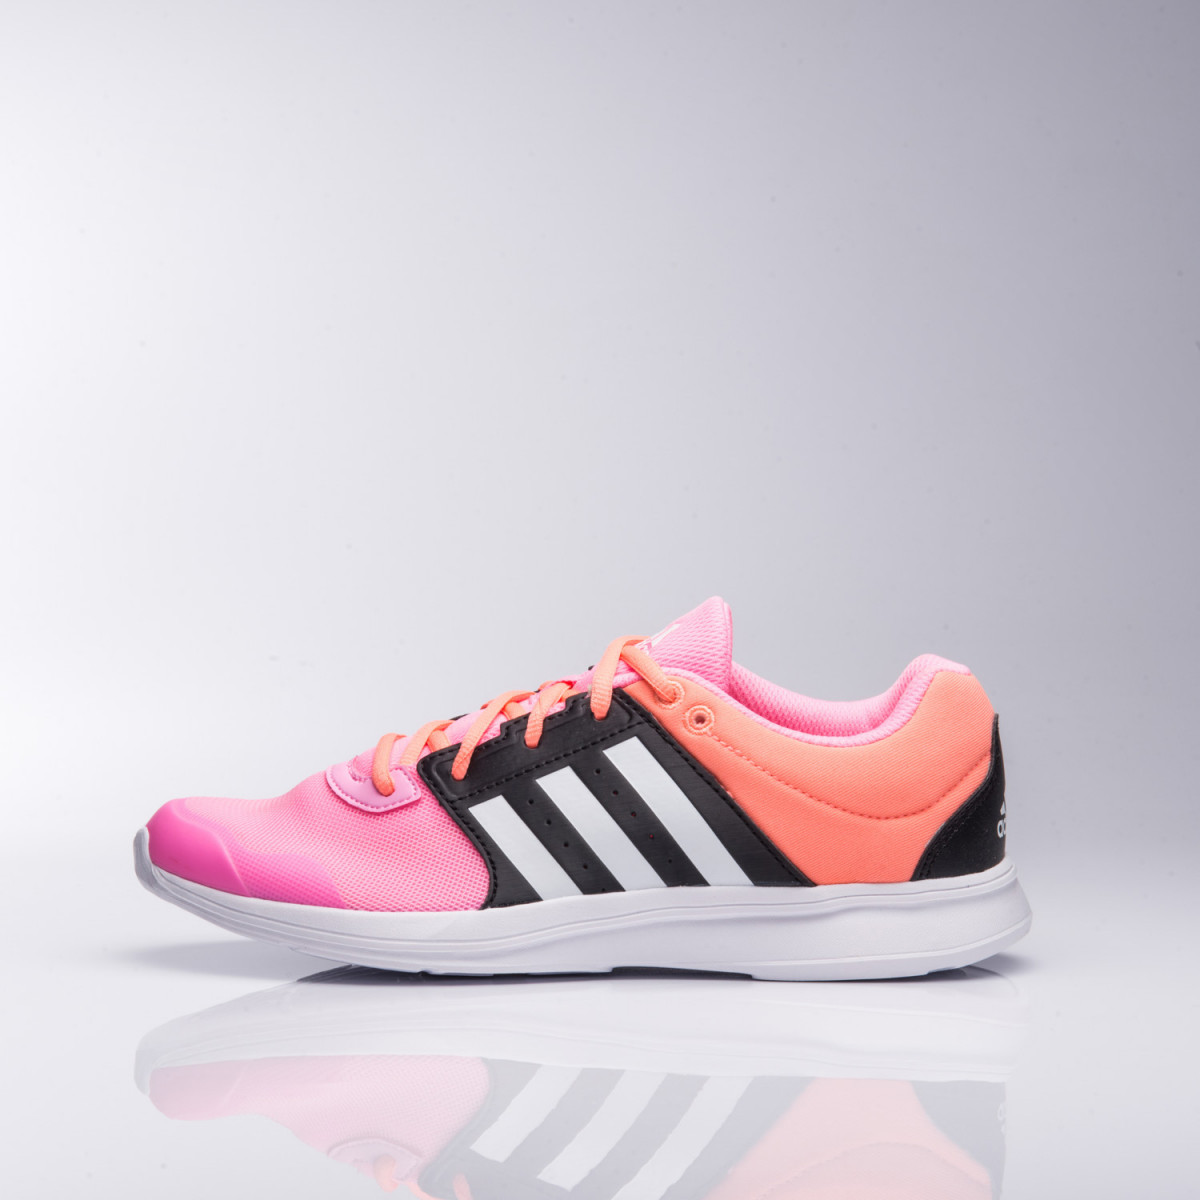 ZAPATILLAS ADIDAS ESSENTIAL FUN 2 2DA SELECCION